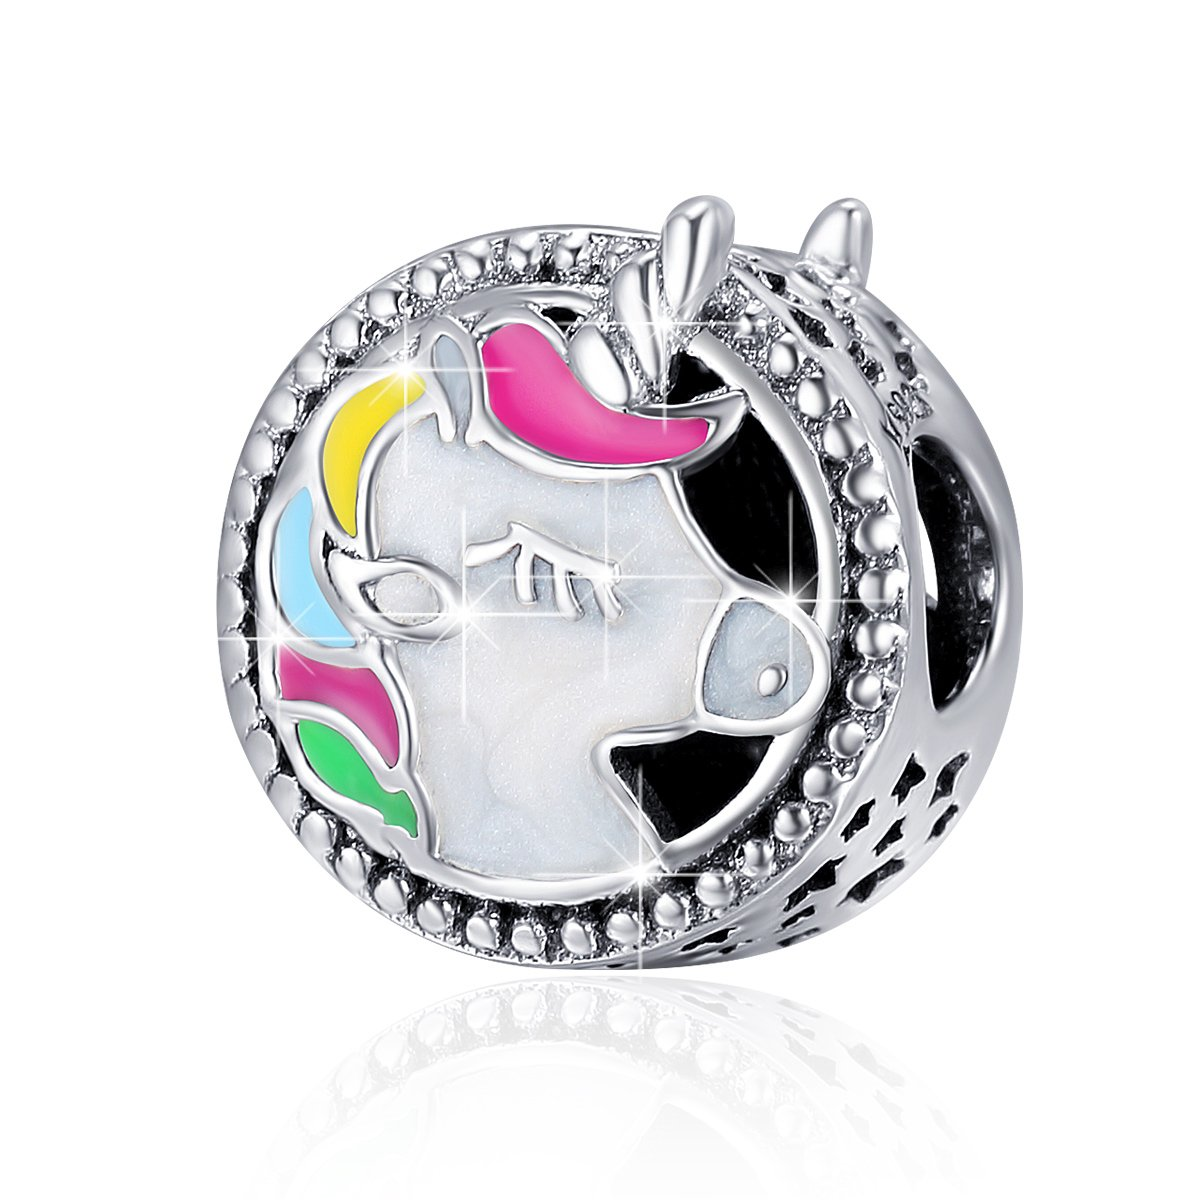 BAMOER 925 Sterling Silver Unicorn Charm Bead Enamel Charm Fit Bracelet Necklace Perfect Jewelry For Women Girls by BAMOER (Image #2)